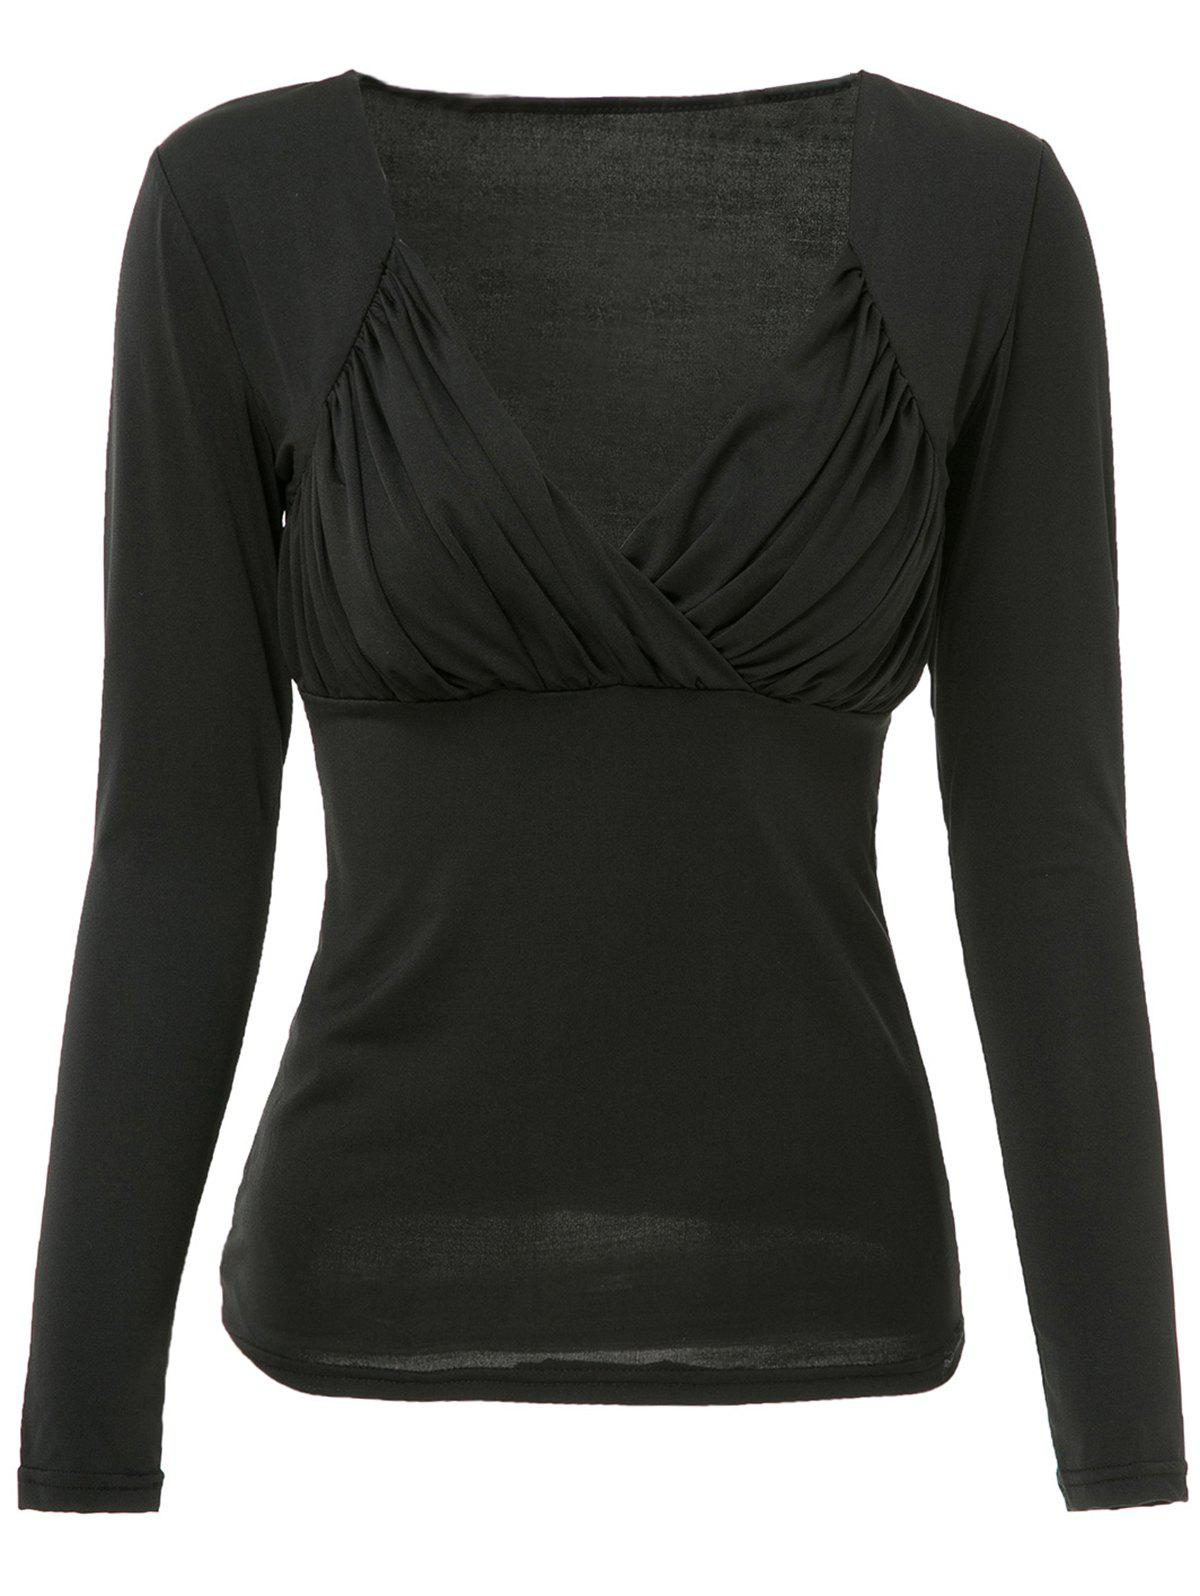 Sexy Low-Cut Ruched Sweetheart Neck Solid Color T-Shirt For WomenWomen<br><br><br>Size: M<br>Color: BLACK